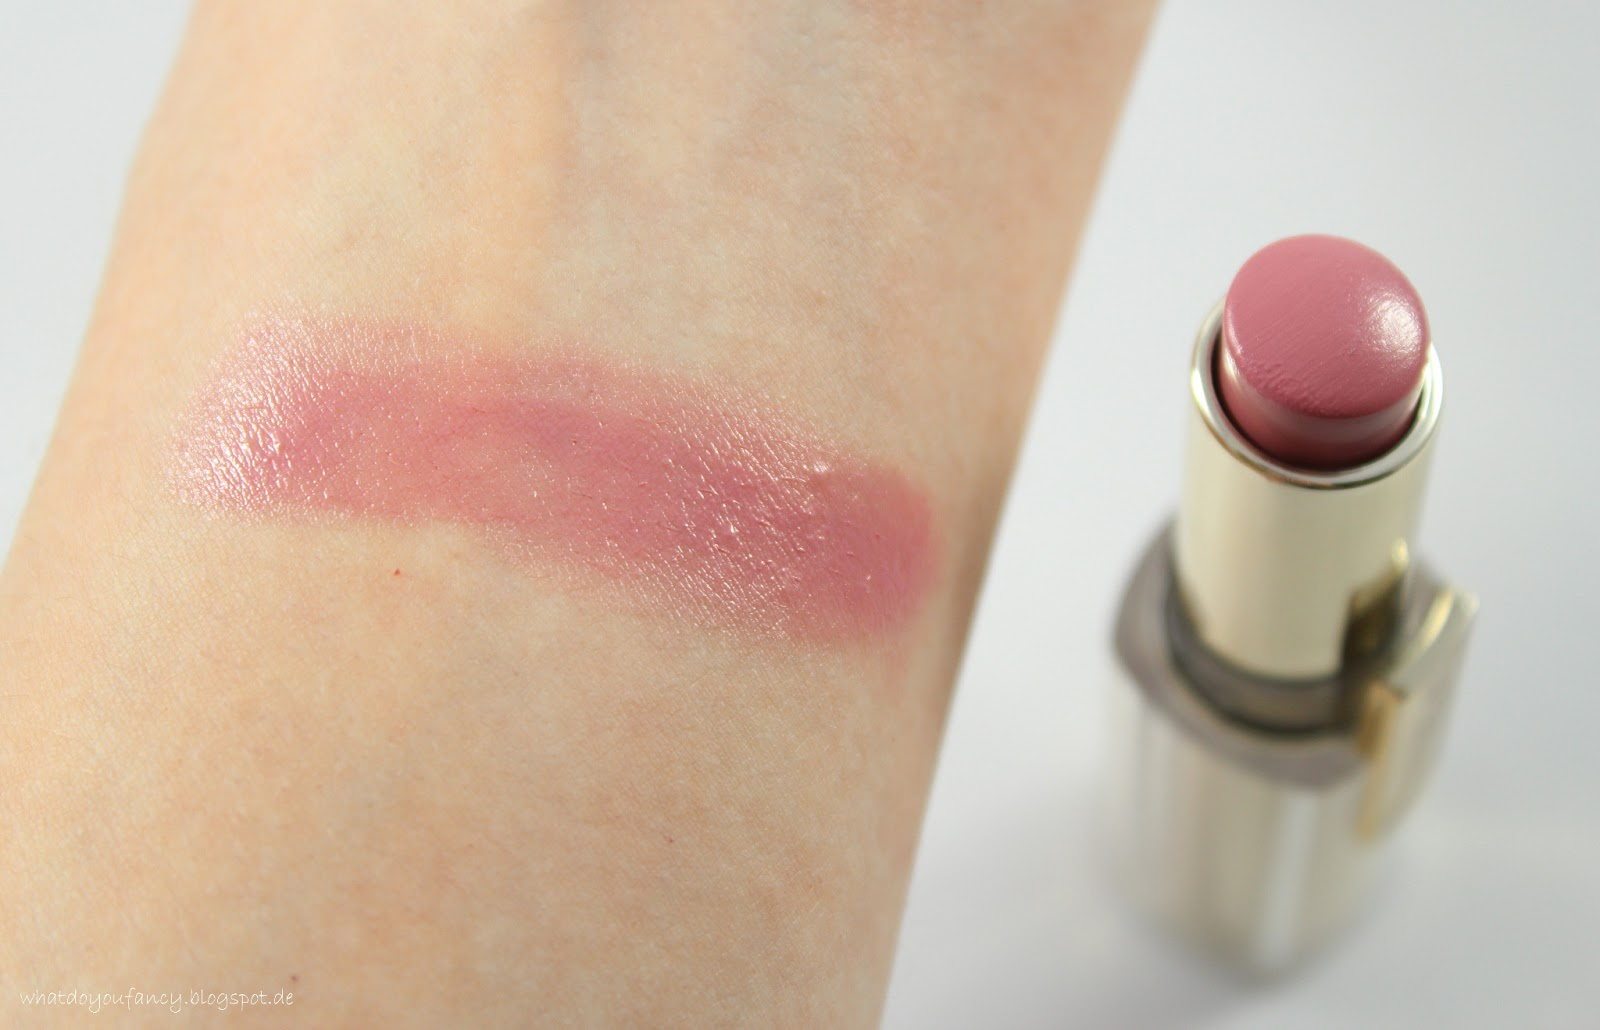 L'Oréal Paris Rouge Caresse Lippenstift in Tempting Lilac (101)